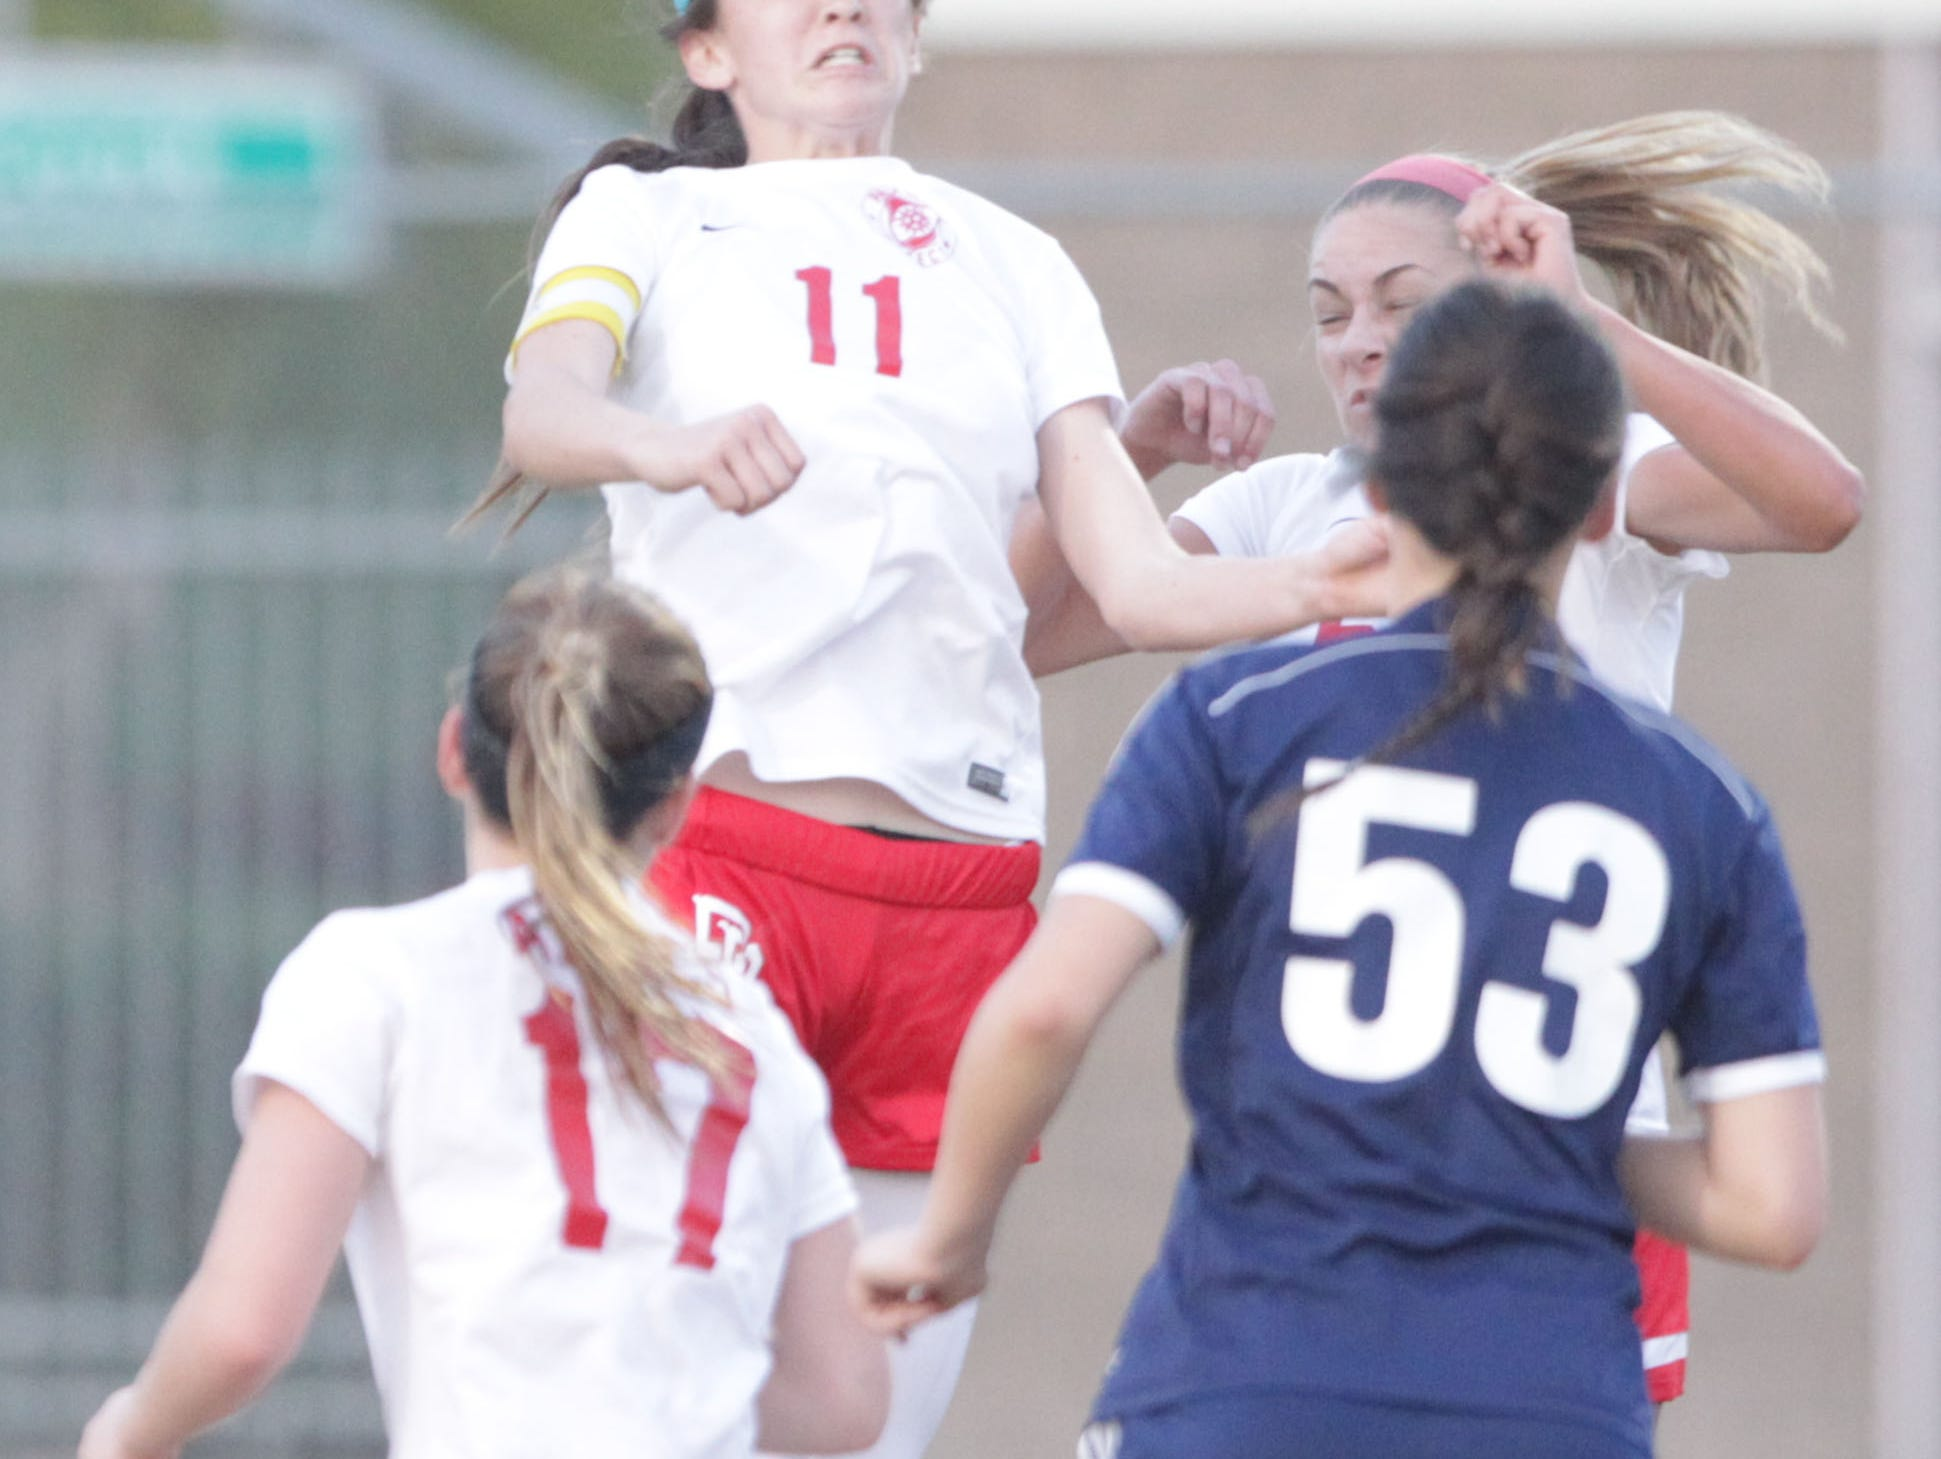 Jane Jordan of Palm Desert High School defended well but her team lost their CIF Game 1-0 to California High School of Whittier at Palm Desert.